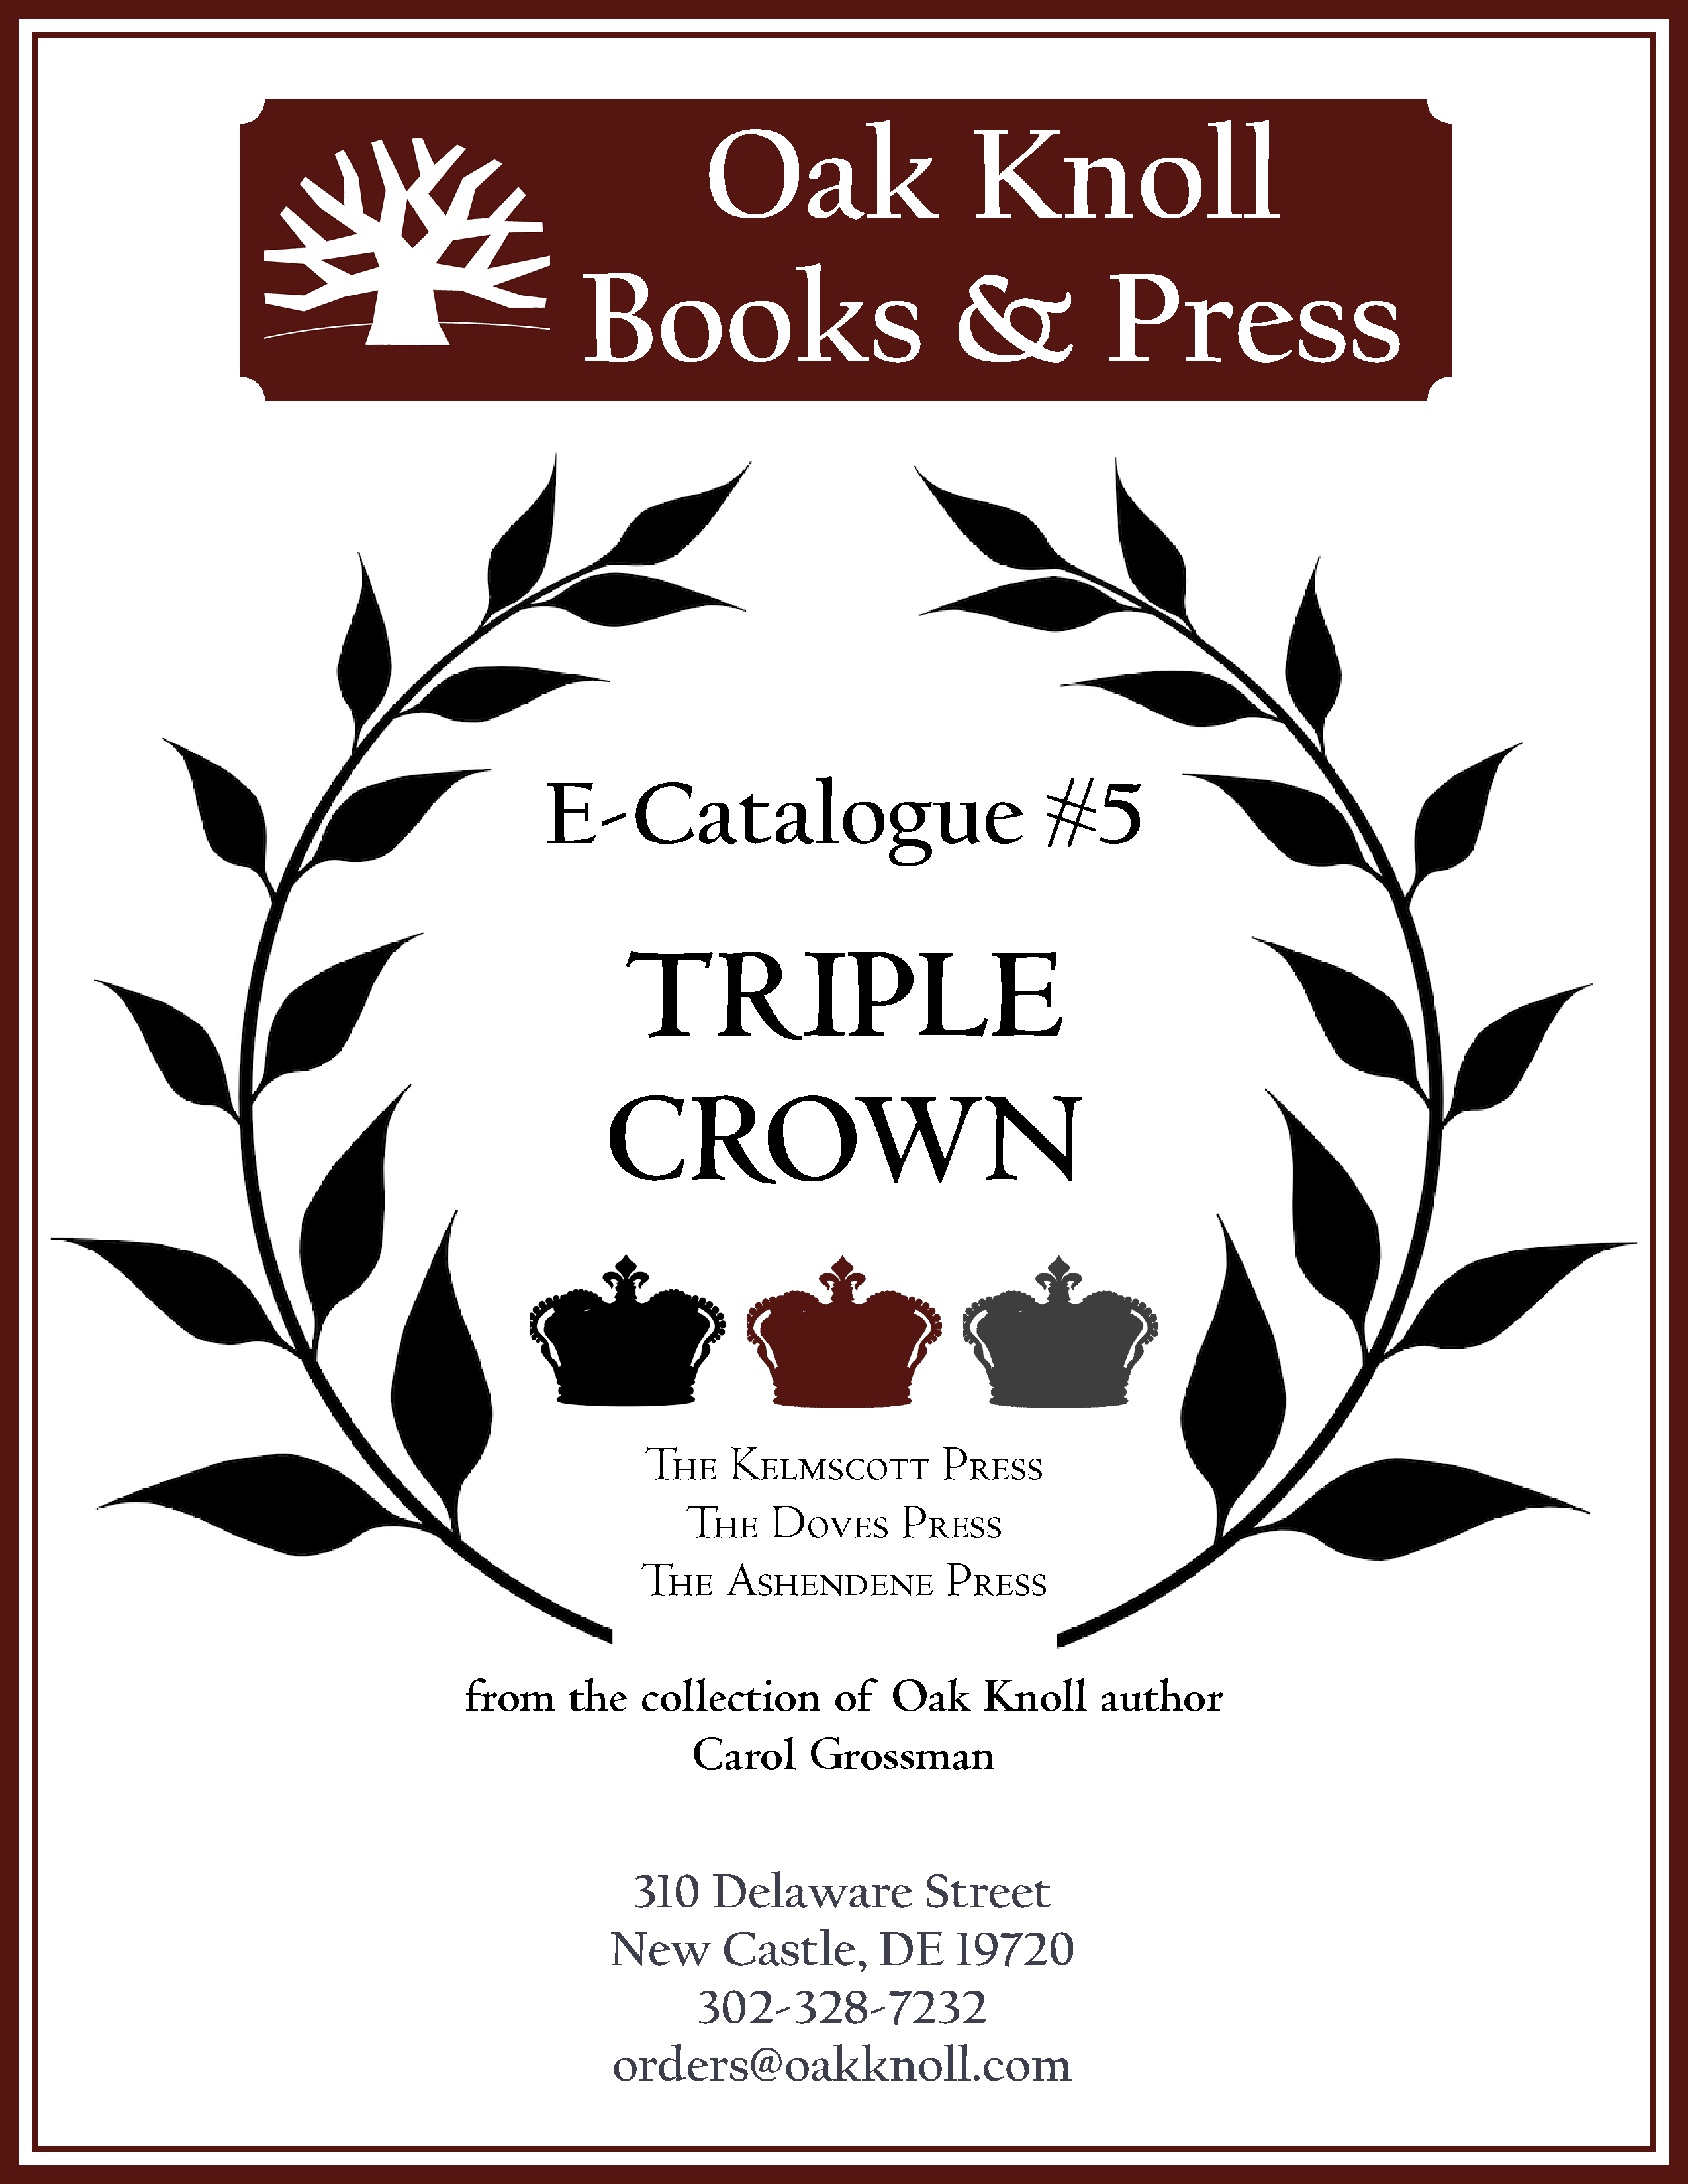 e-Catalogue #5 - Triple Crown